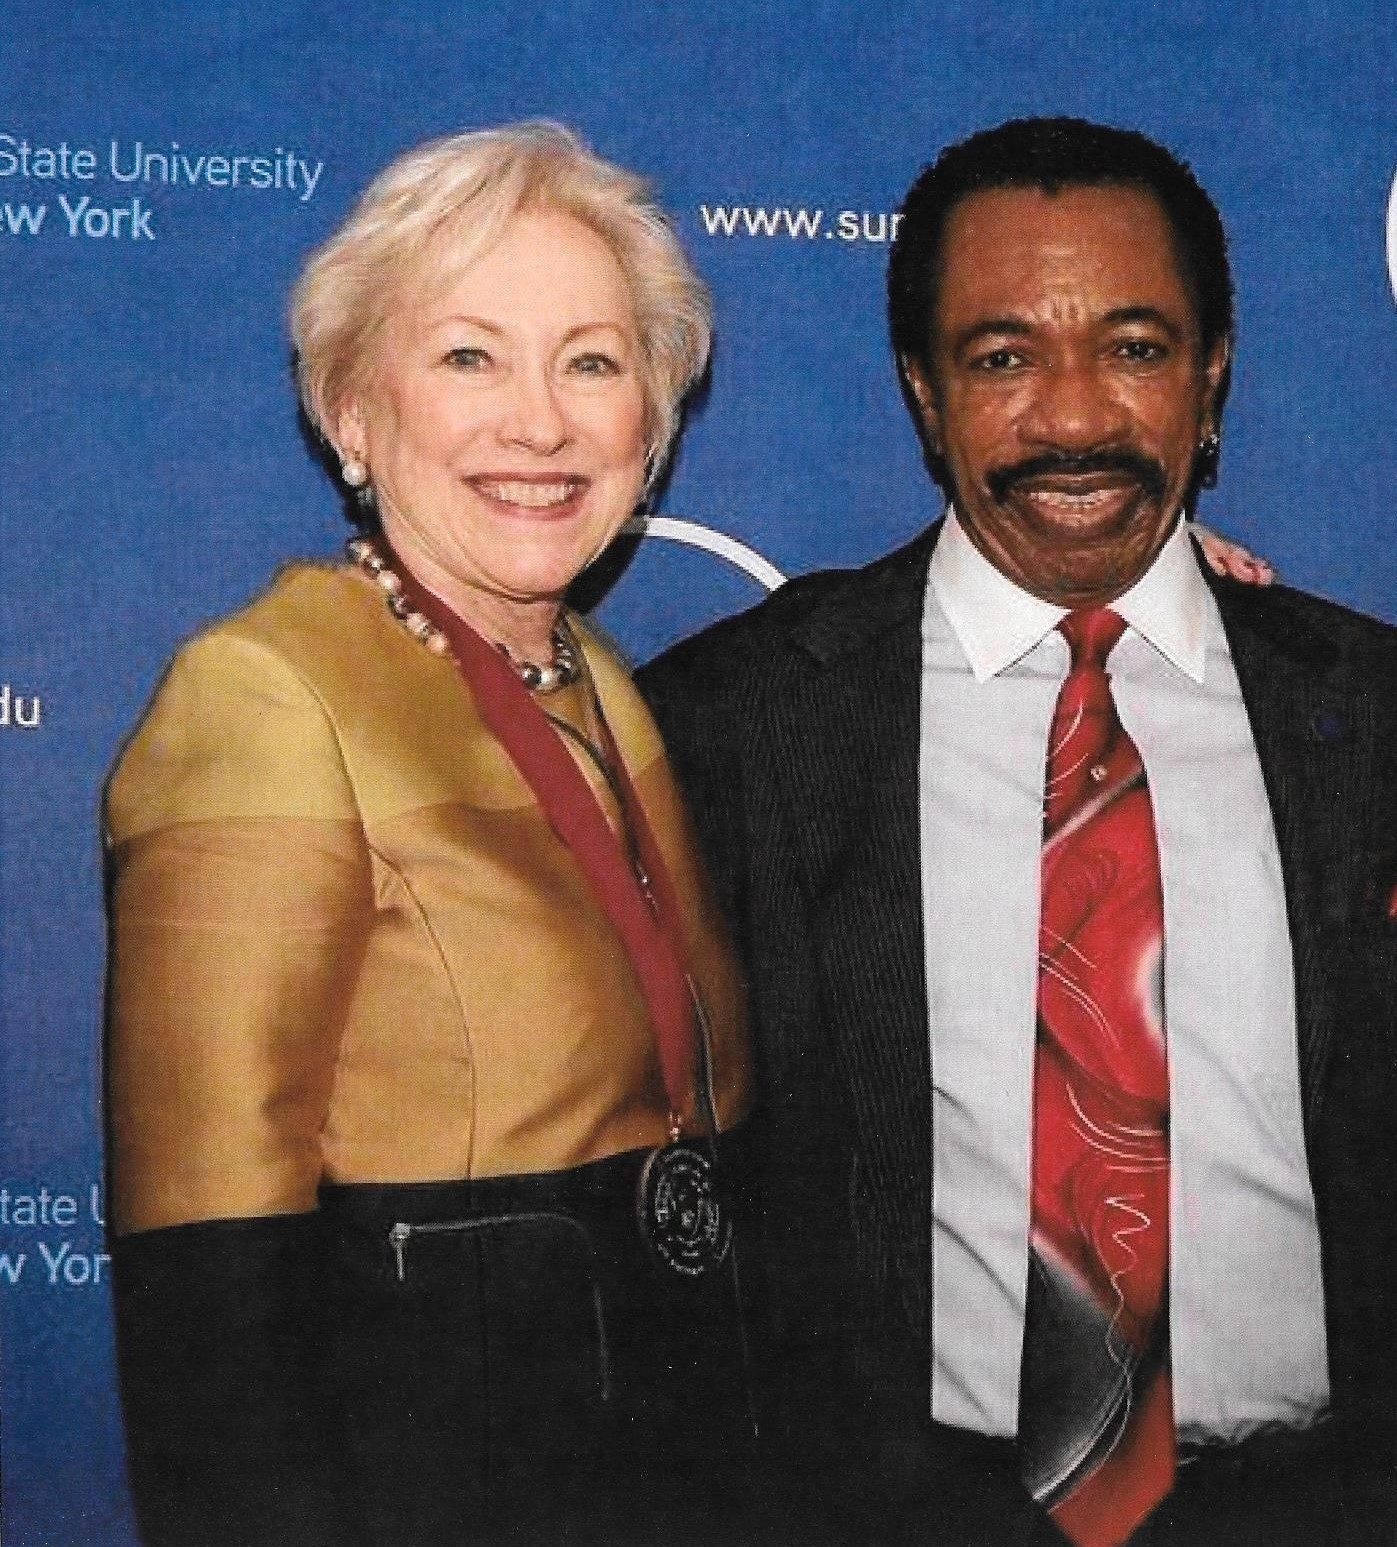 Chancellor Zimpher and Dr. Asumah